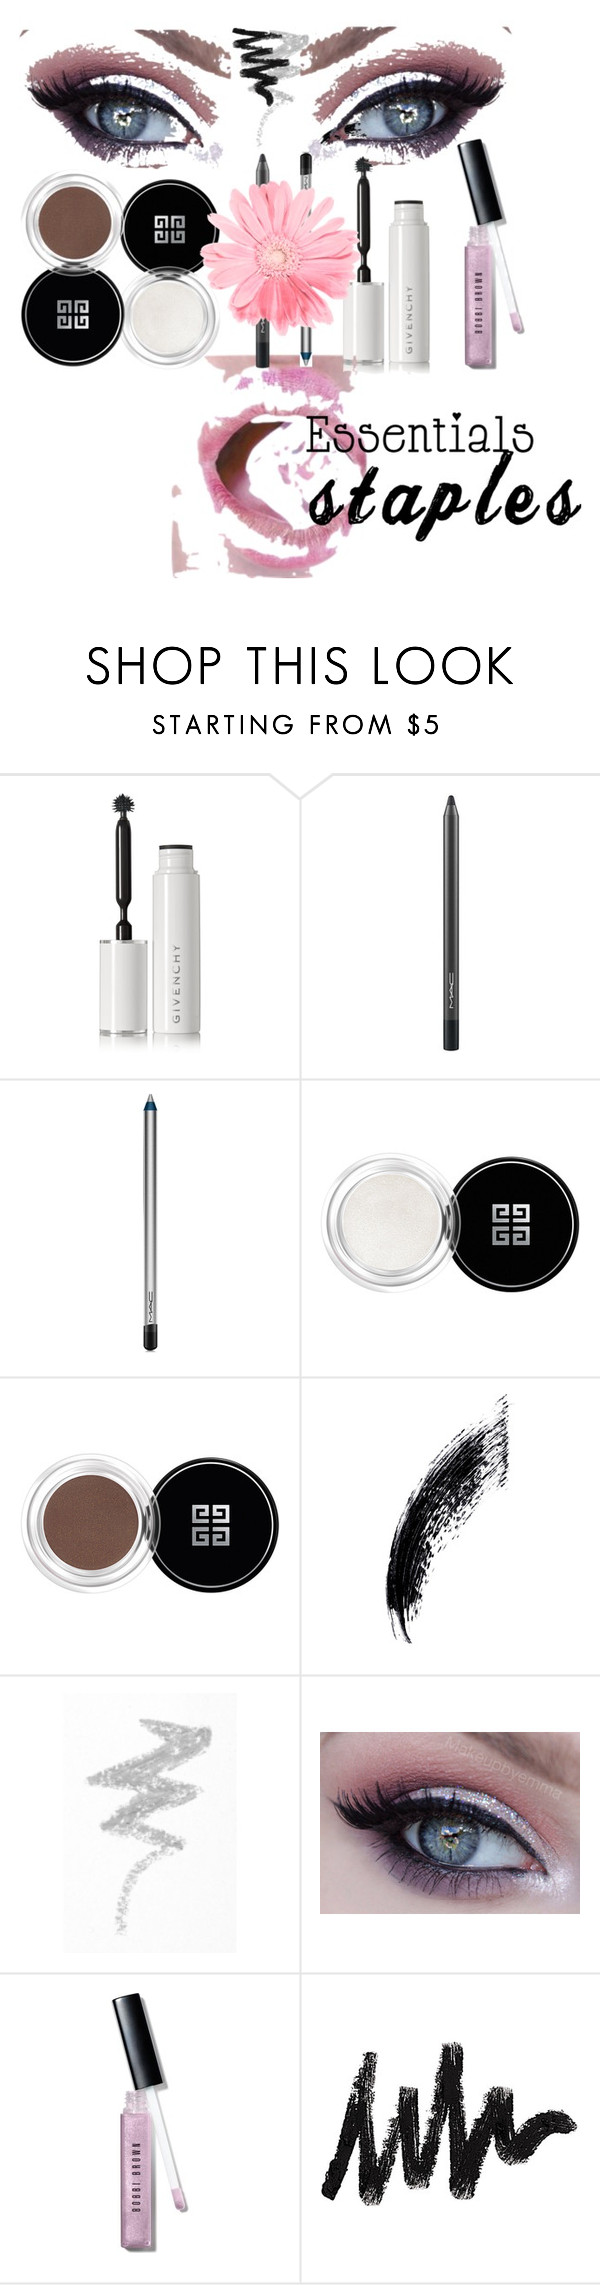 """me"" by svnaumova-15 ❤ liked on Polyvore featuring beauty, Givenchy, MAC Cosmetics, NYX, Bobbi Brown Cosmetics, contestentry, PVStyleInsiderContest and makeupbagstaples"